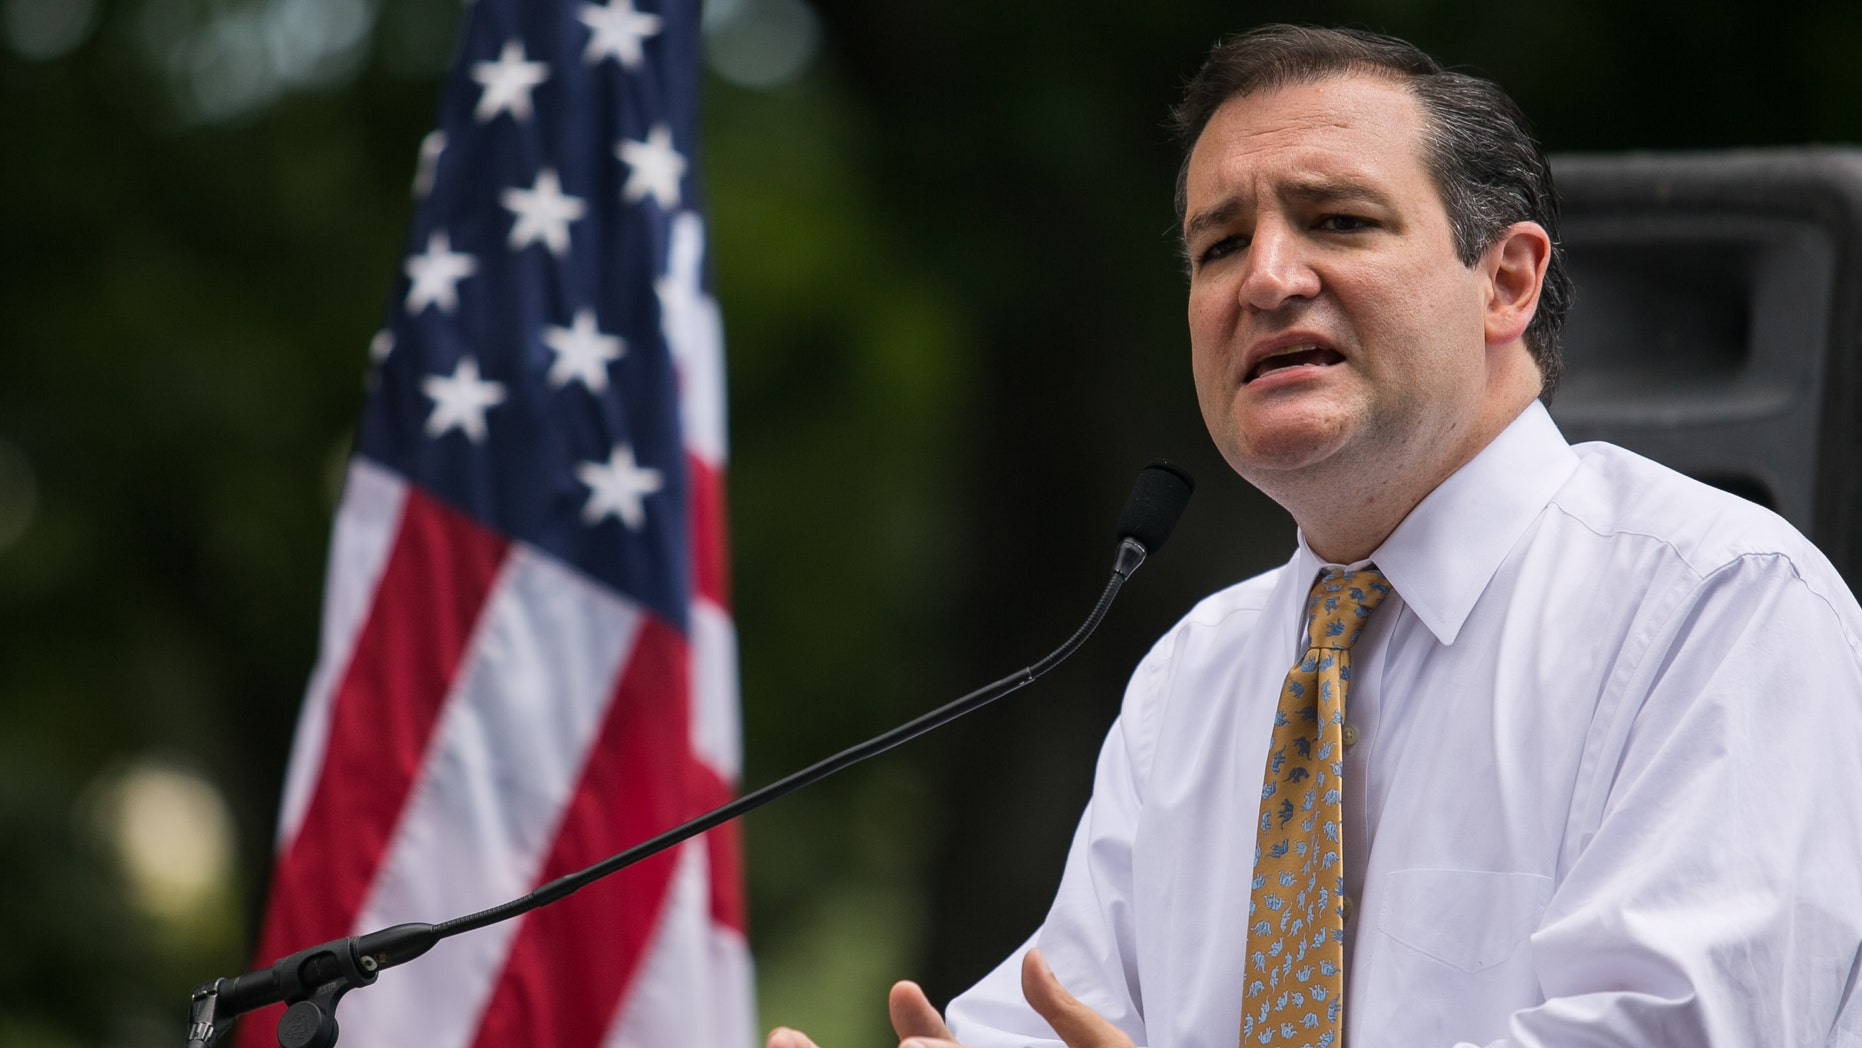 WASHINGTON, DC - JULY 15: Sen. Ted Cruz (R-TX) speaks about immigration during the DC March for Jobs in Upper Senate Park near Capitol Hill, on July 15, 2013 in Washington, DC. Conservative activists and supporters rallied against the Senate's immigration legislation and the impact illegal immigration has on reduced wages and employment opportunities for some Americans. (Photo by Drew Angerer/Getty Images)